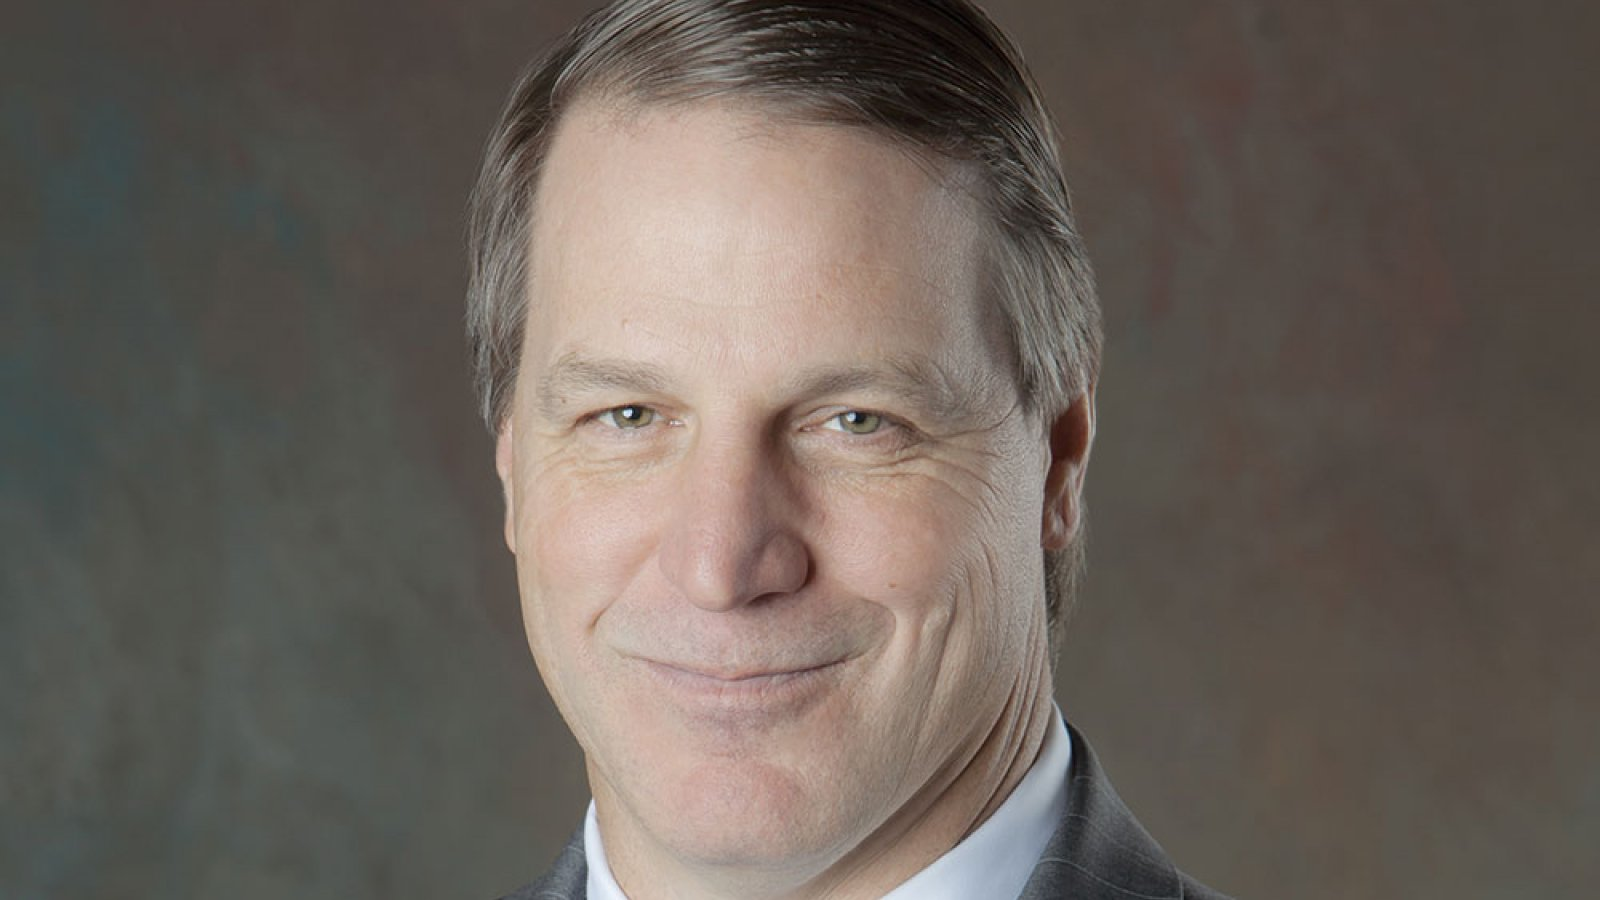 David Miles, a 1985 Nebraska construction management graduate, is executive vice president of the infrastructure group at Kiewit Companies and is a member of the board of directors for Kiewit.